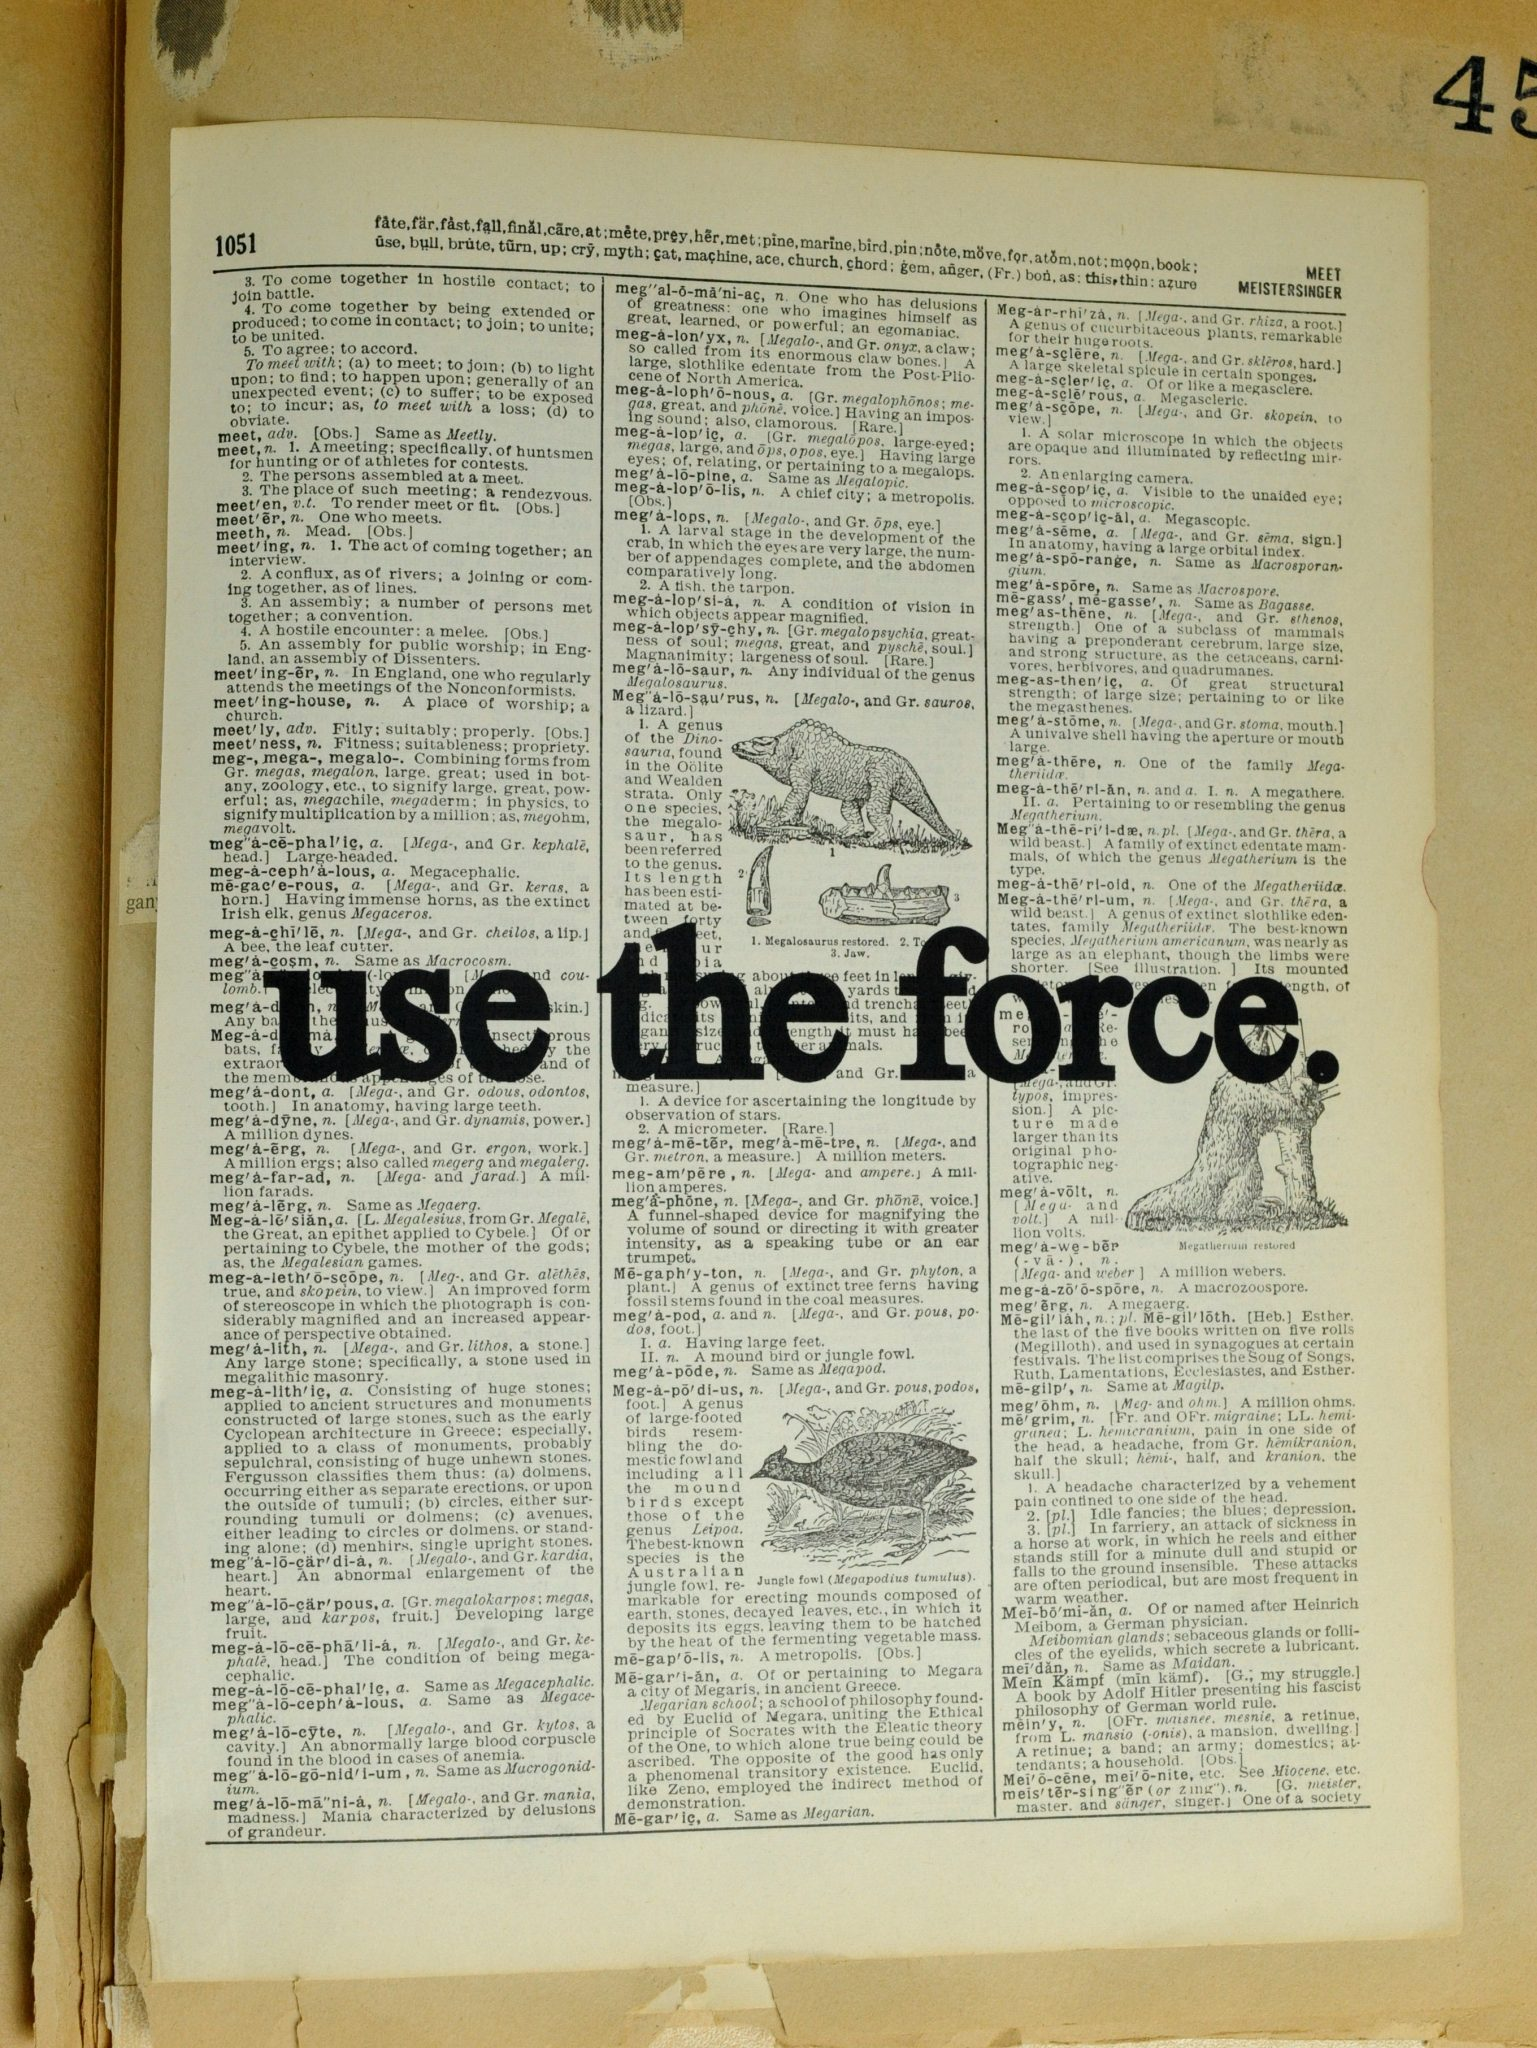 Dictionary Page Print - Use the force.